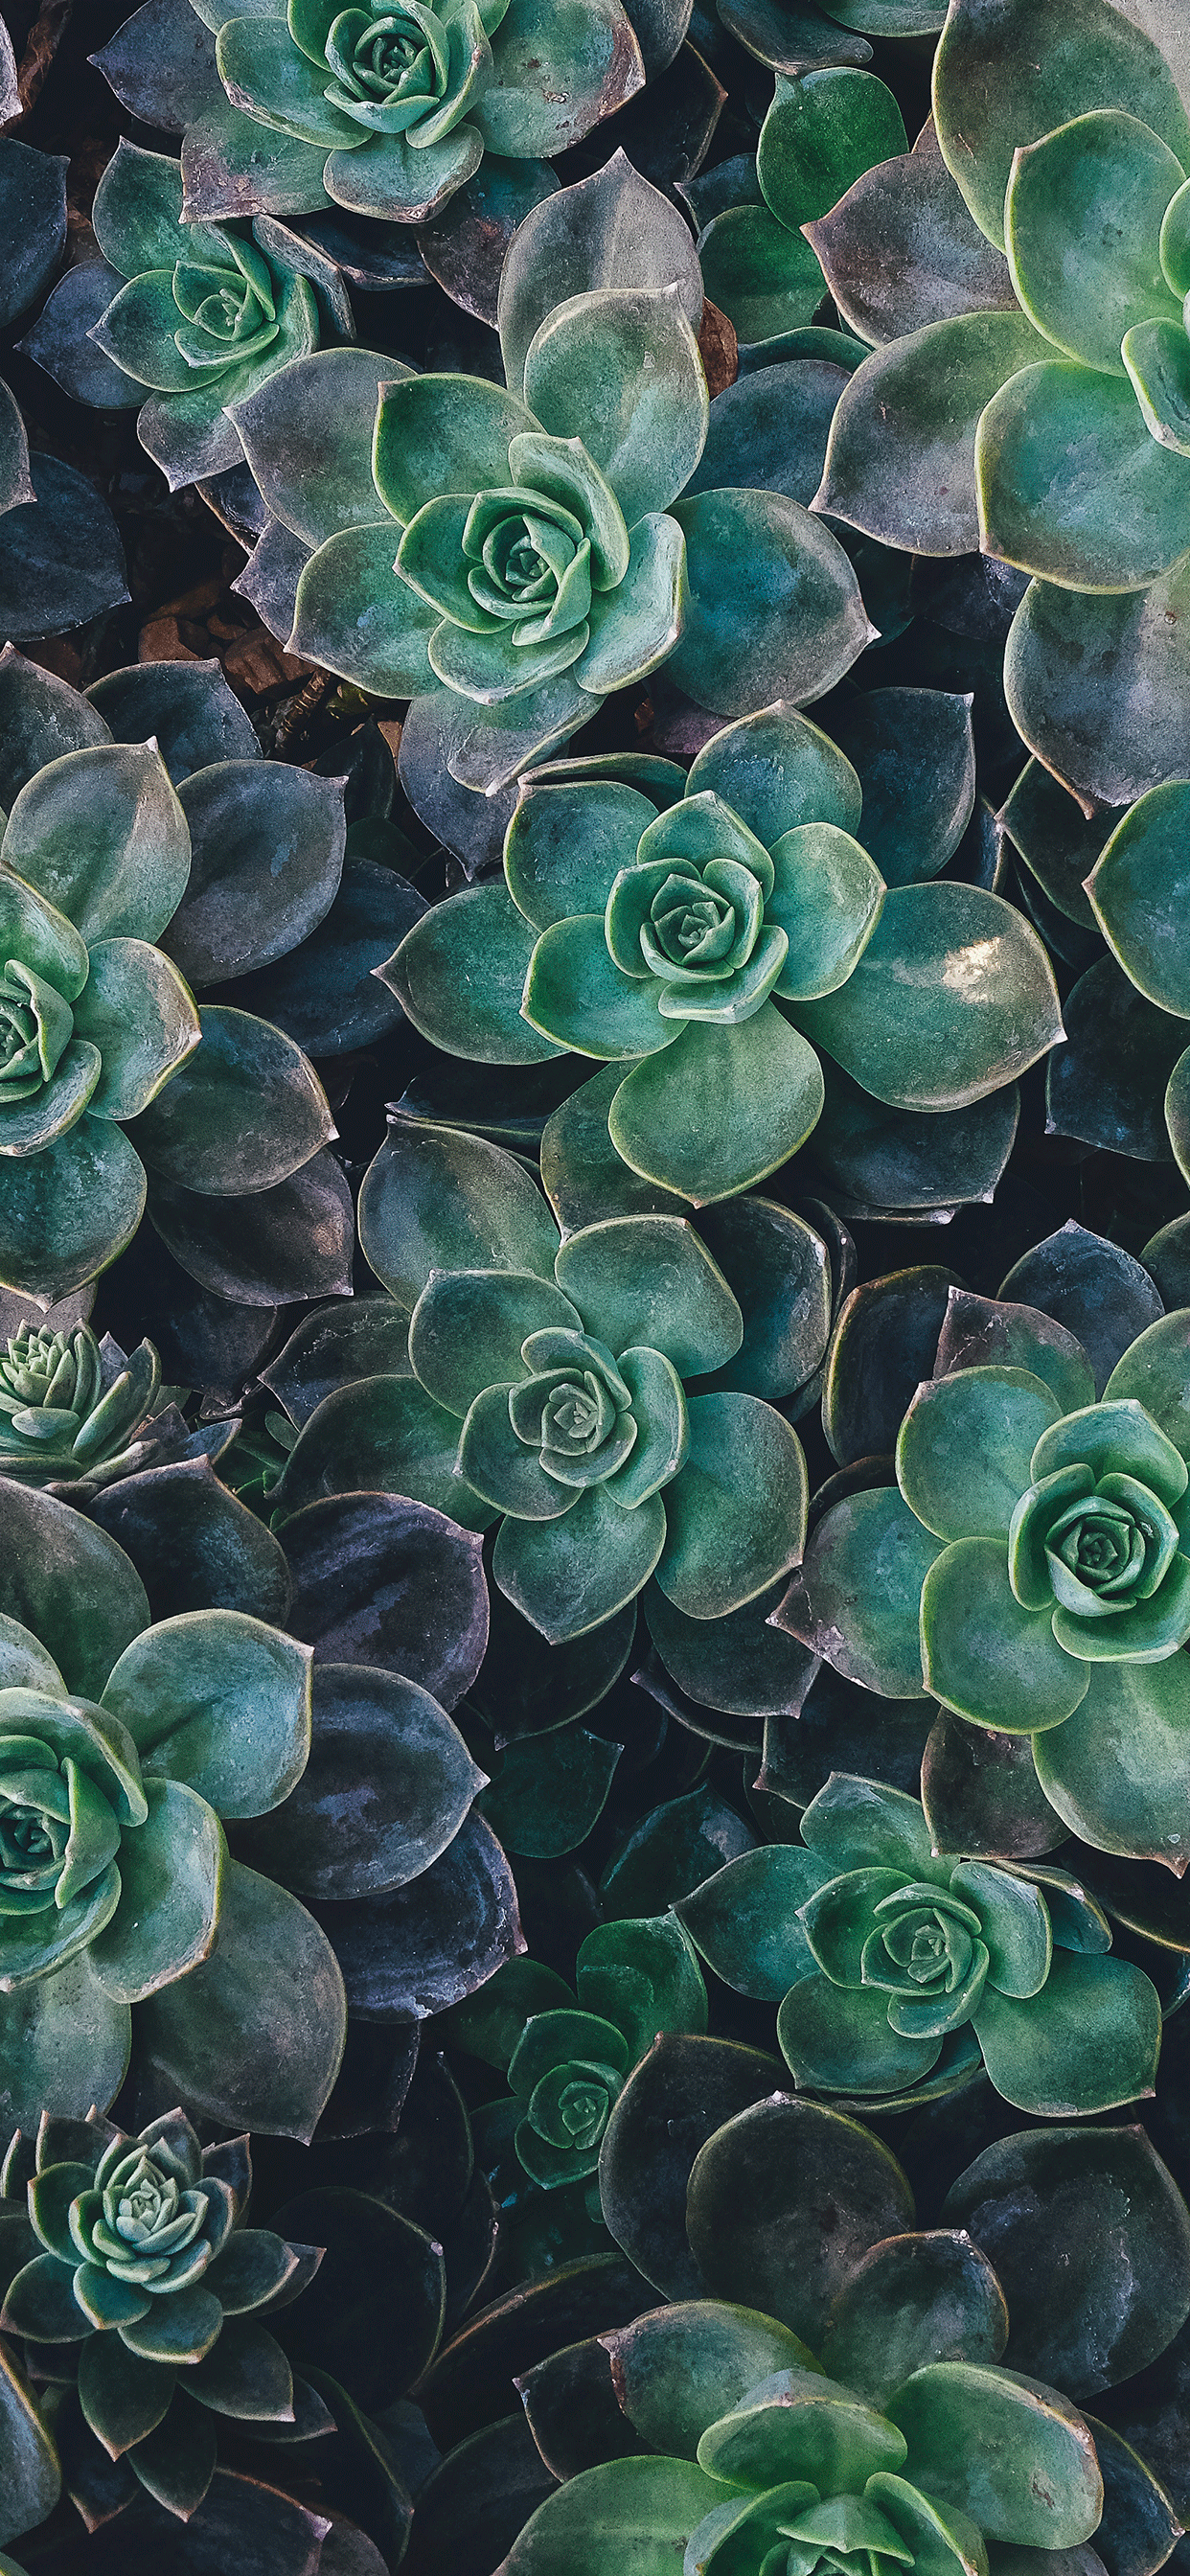 iPhone wallpaper succulent plant garden Fonds d'écran iPhone du 08/04/2019